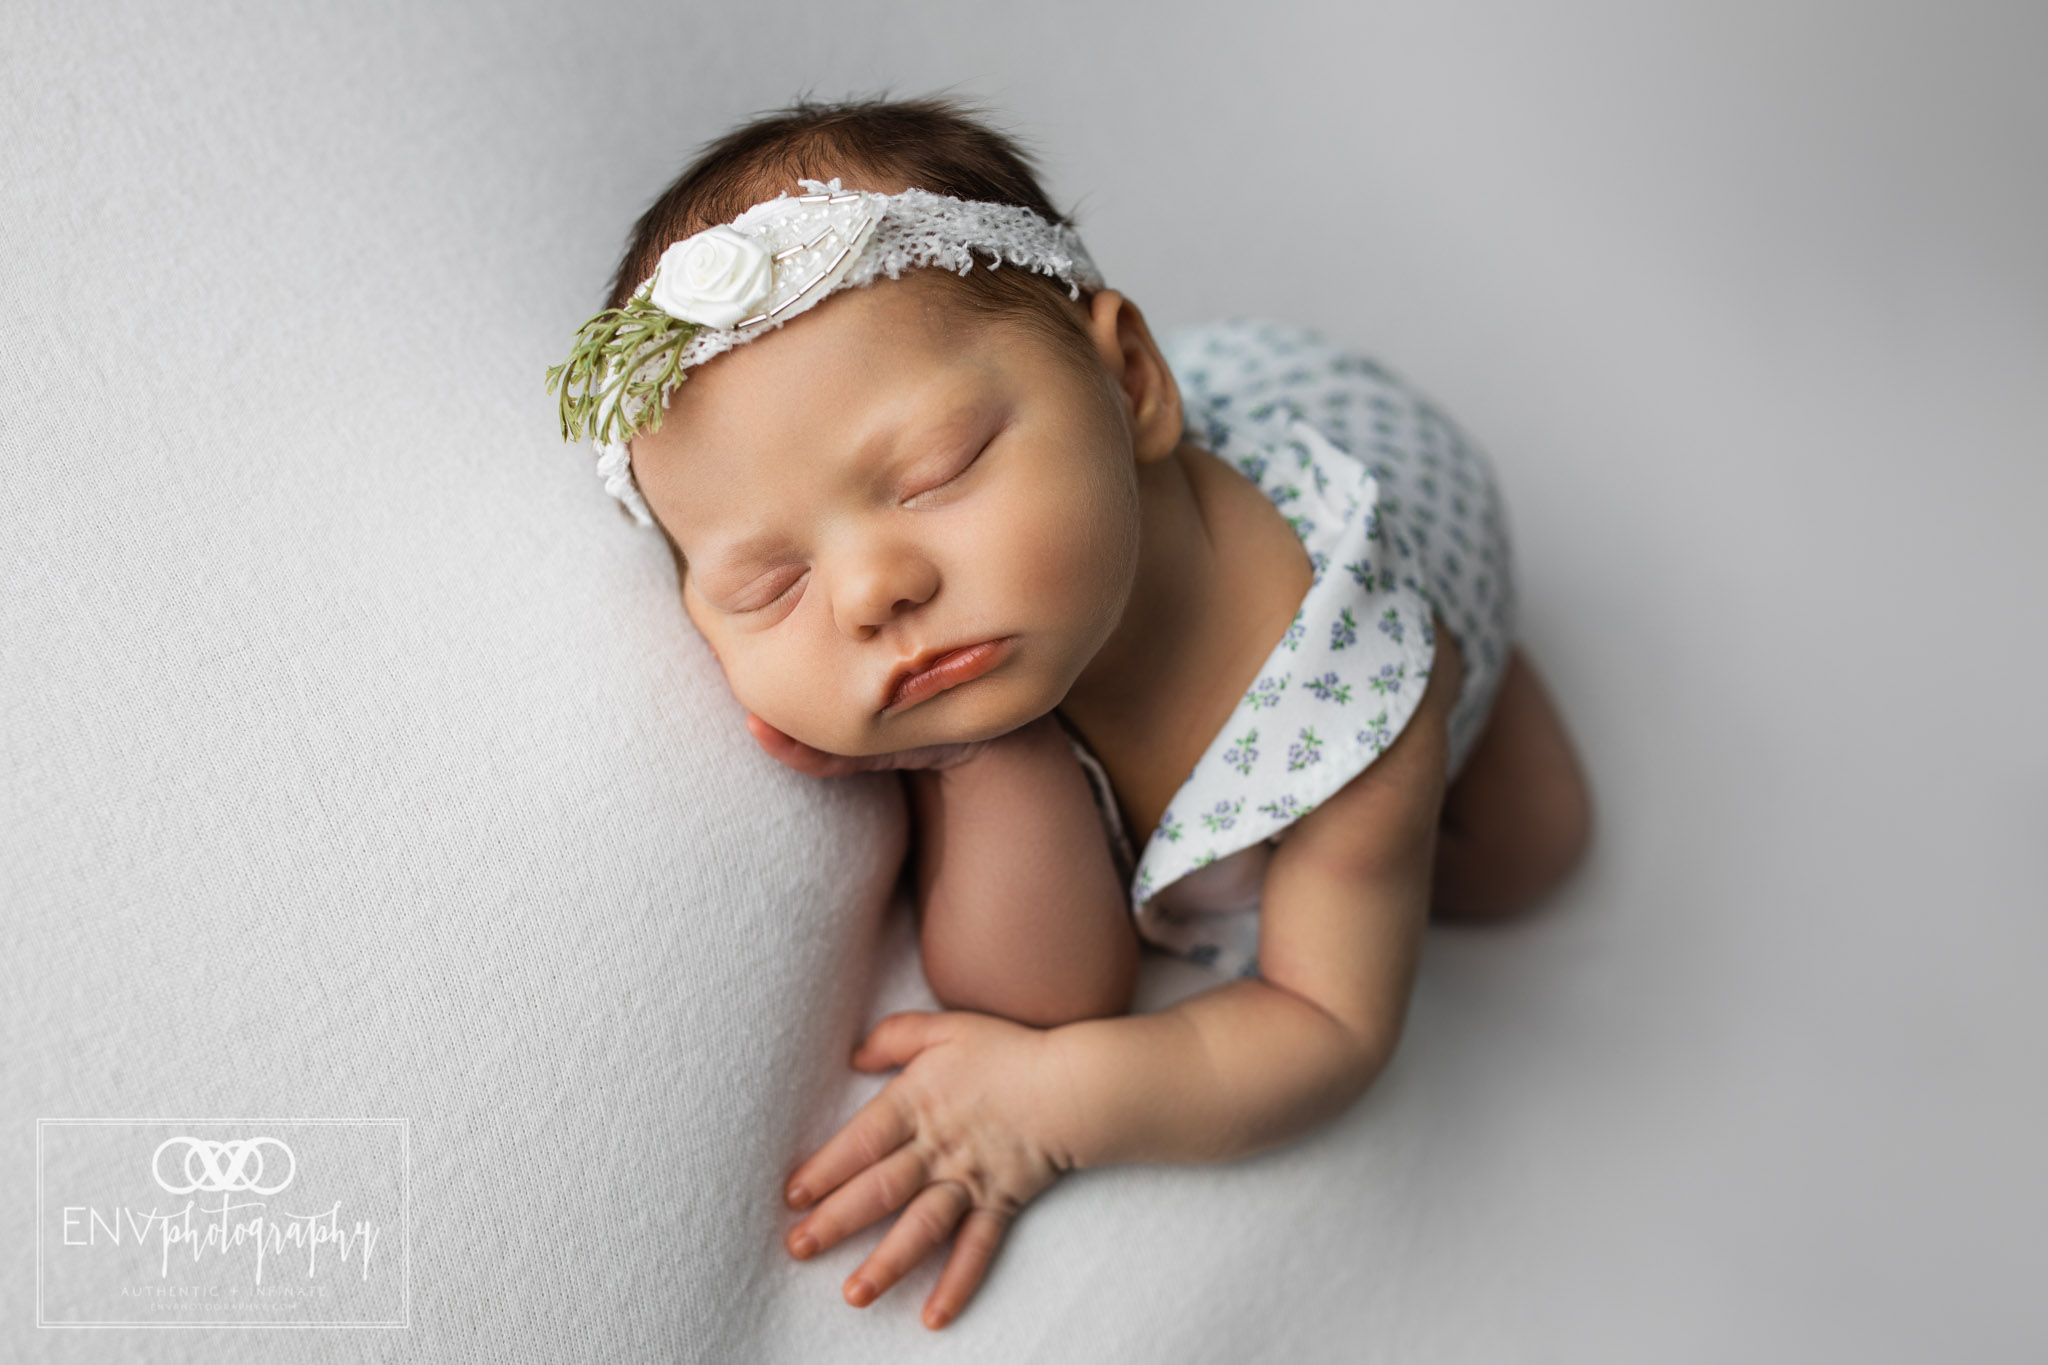 mount vernon columbus ohio newborn maternity photographer (8).jpg